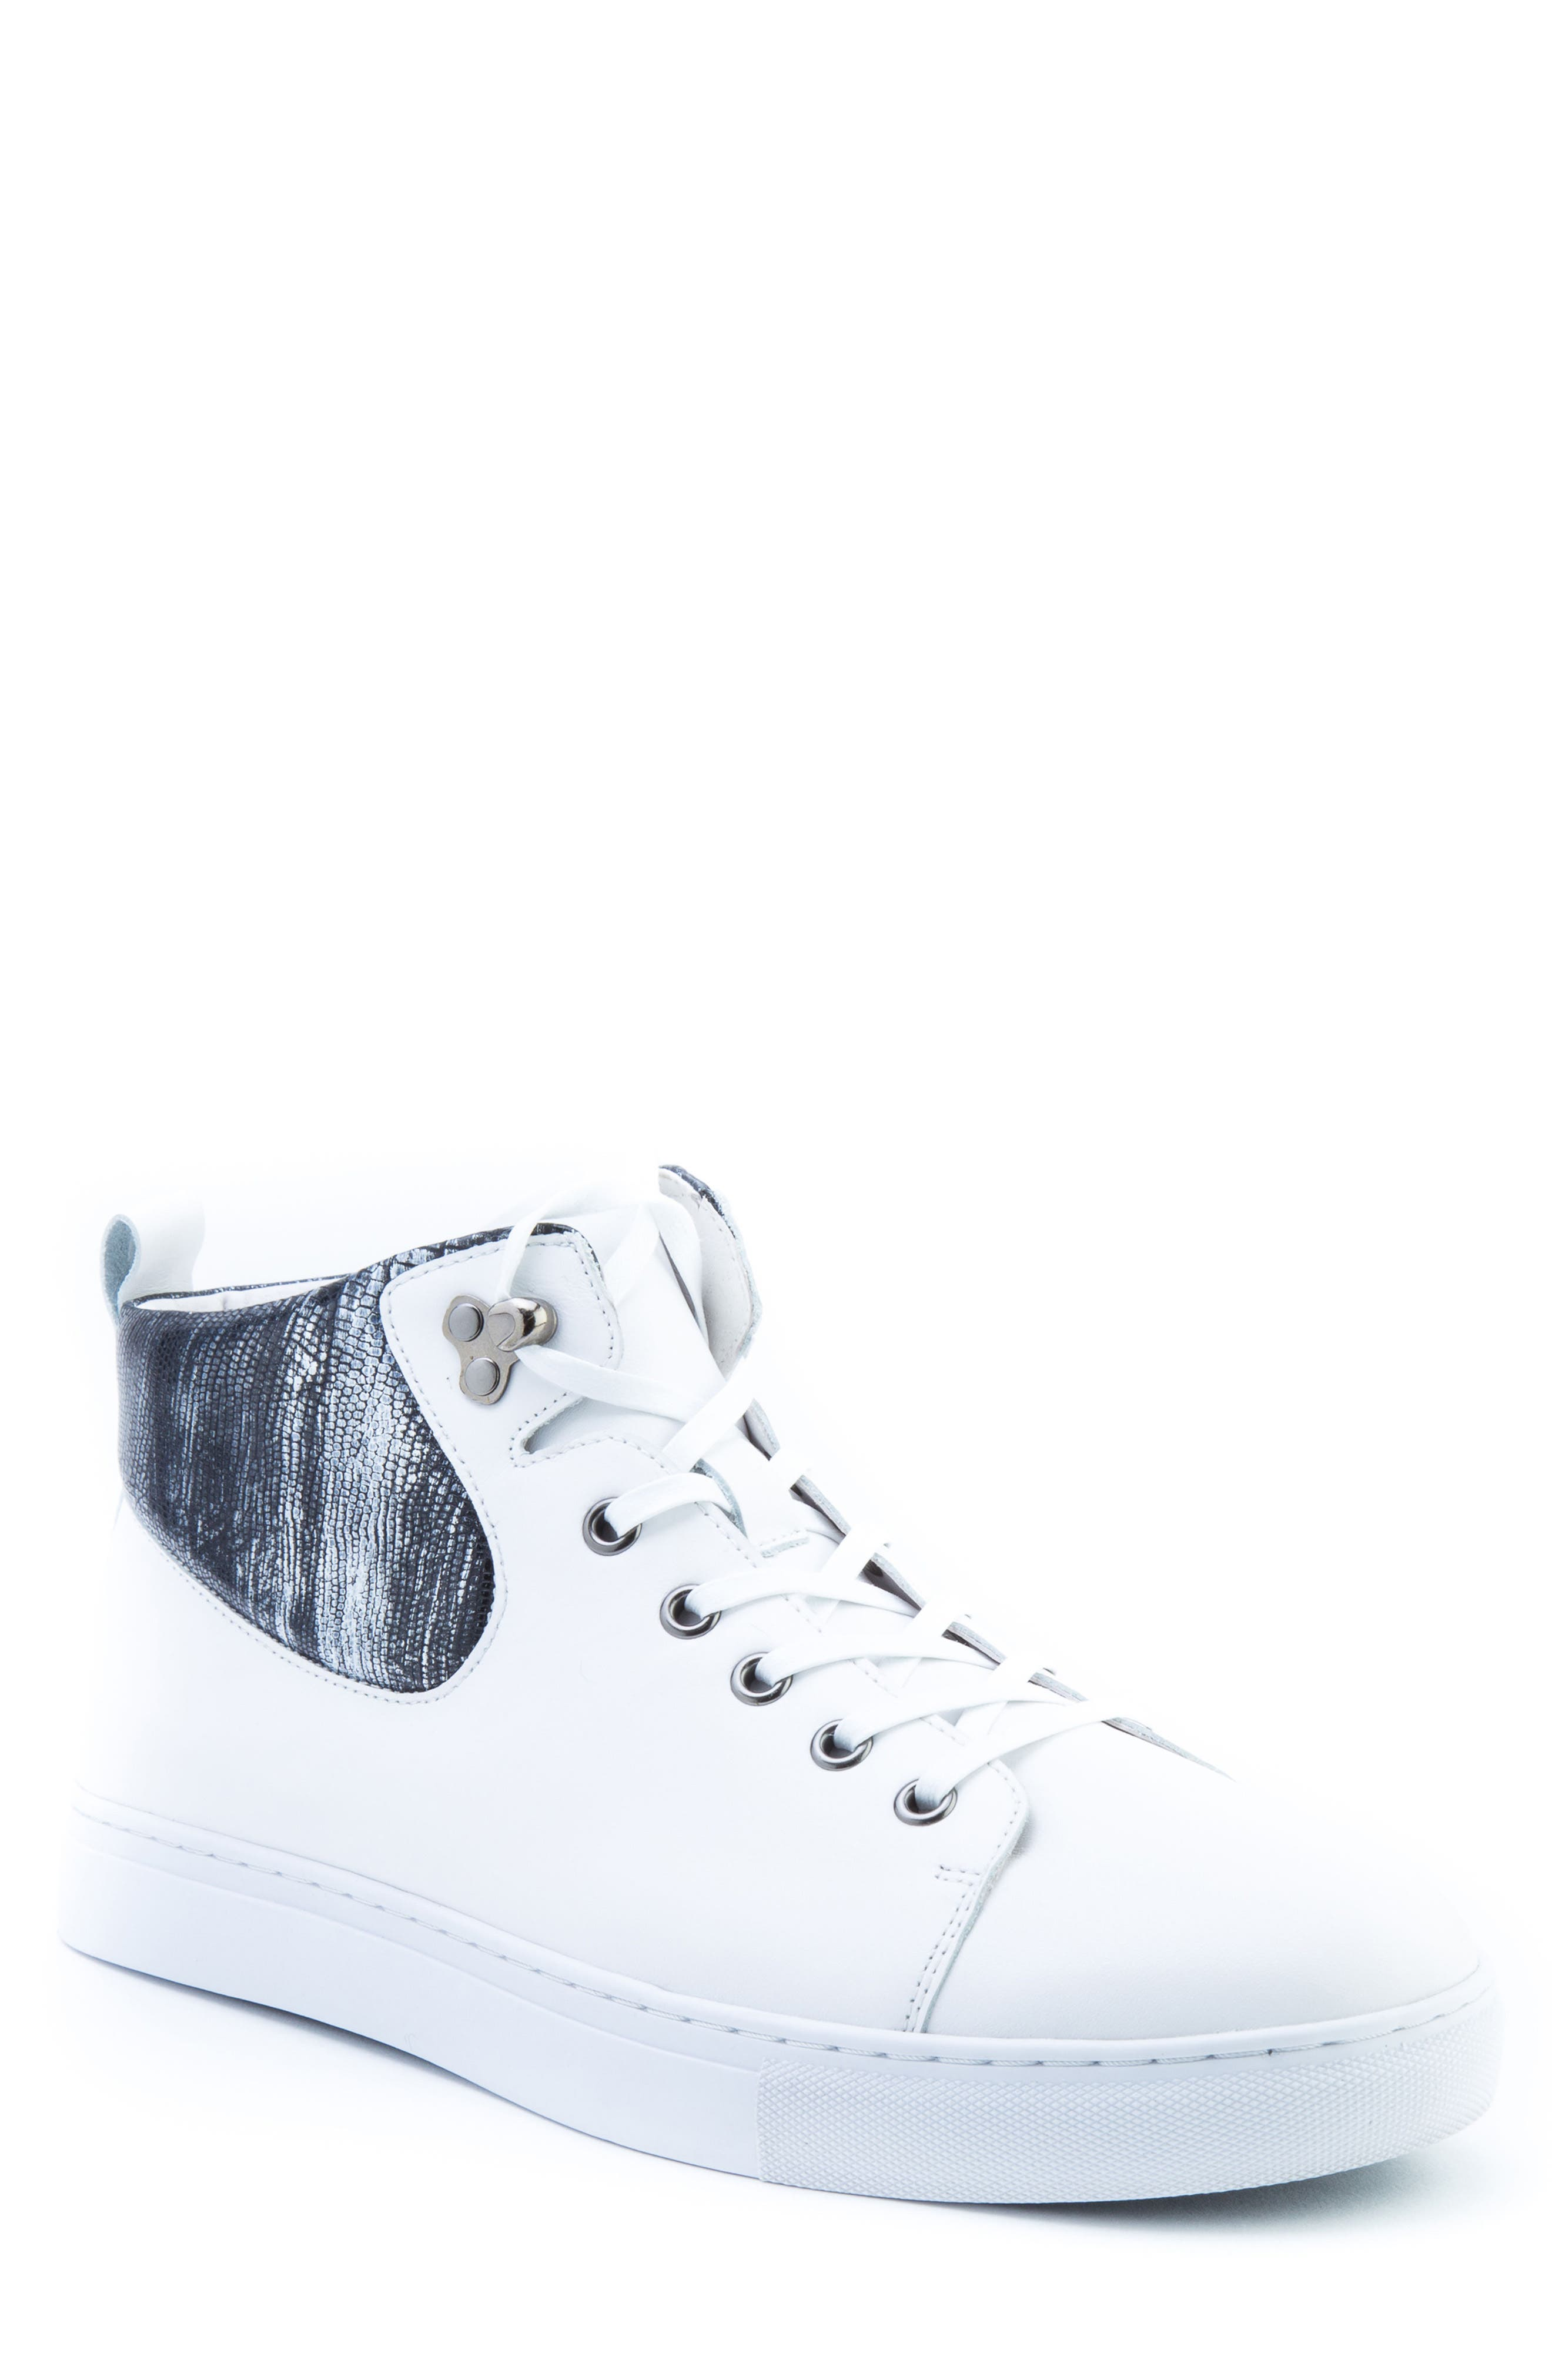 Carroll Sneaker,                             Main thumbnail 1, color,                             White Leather